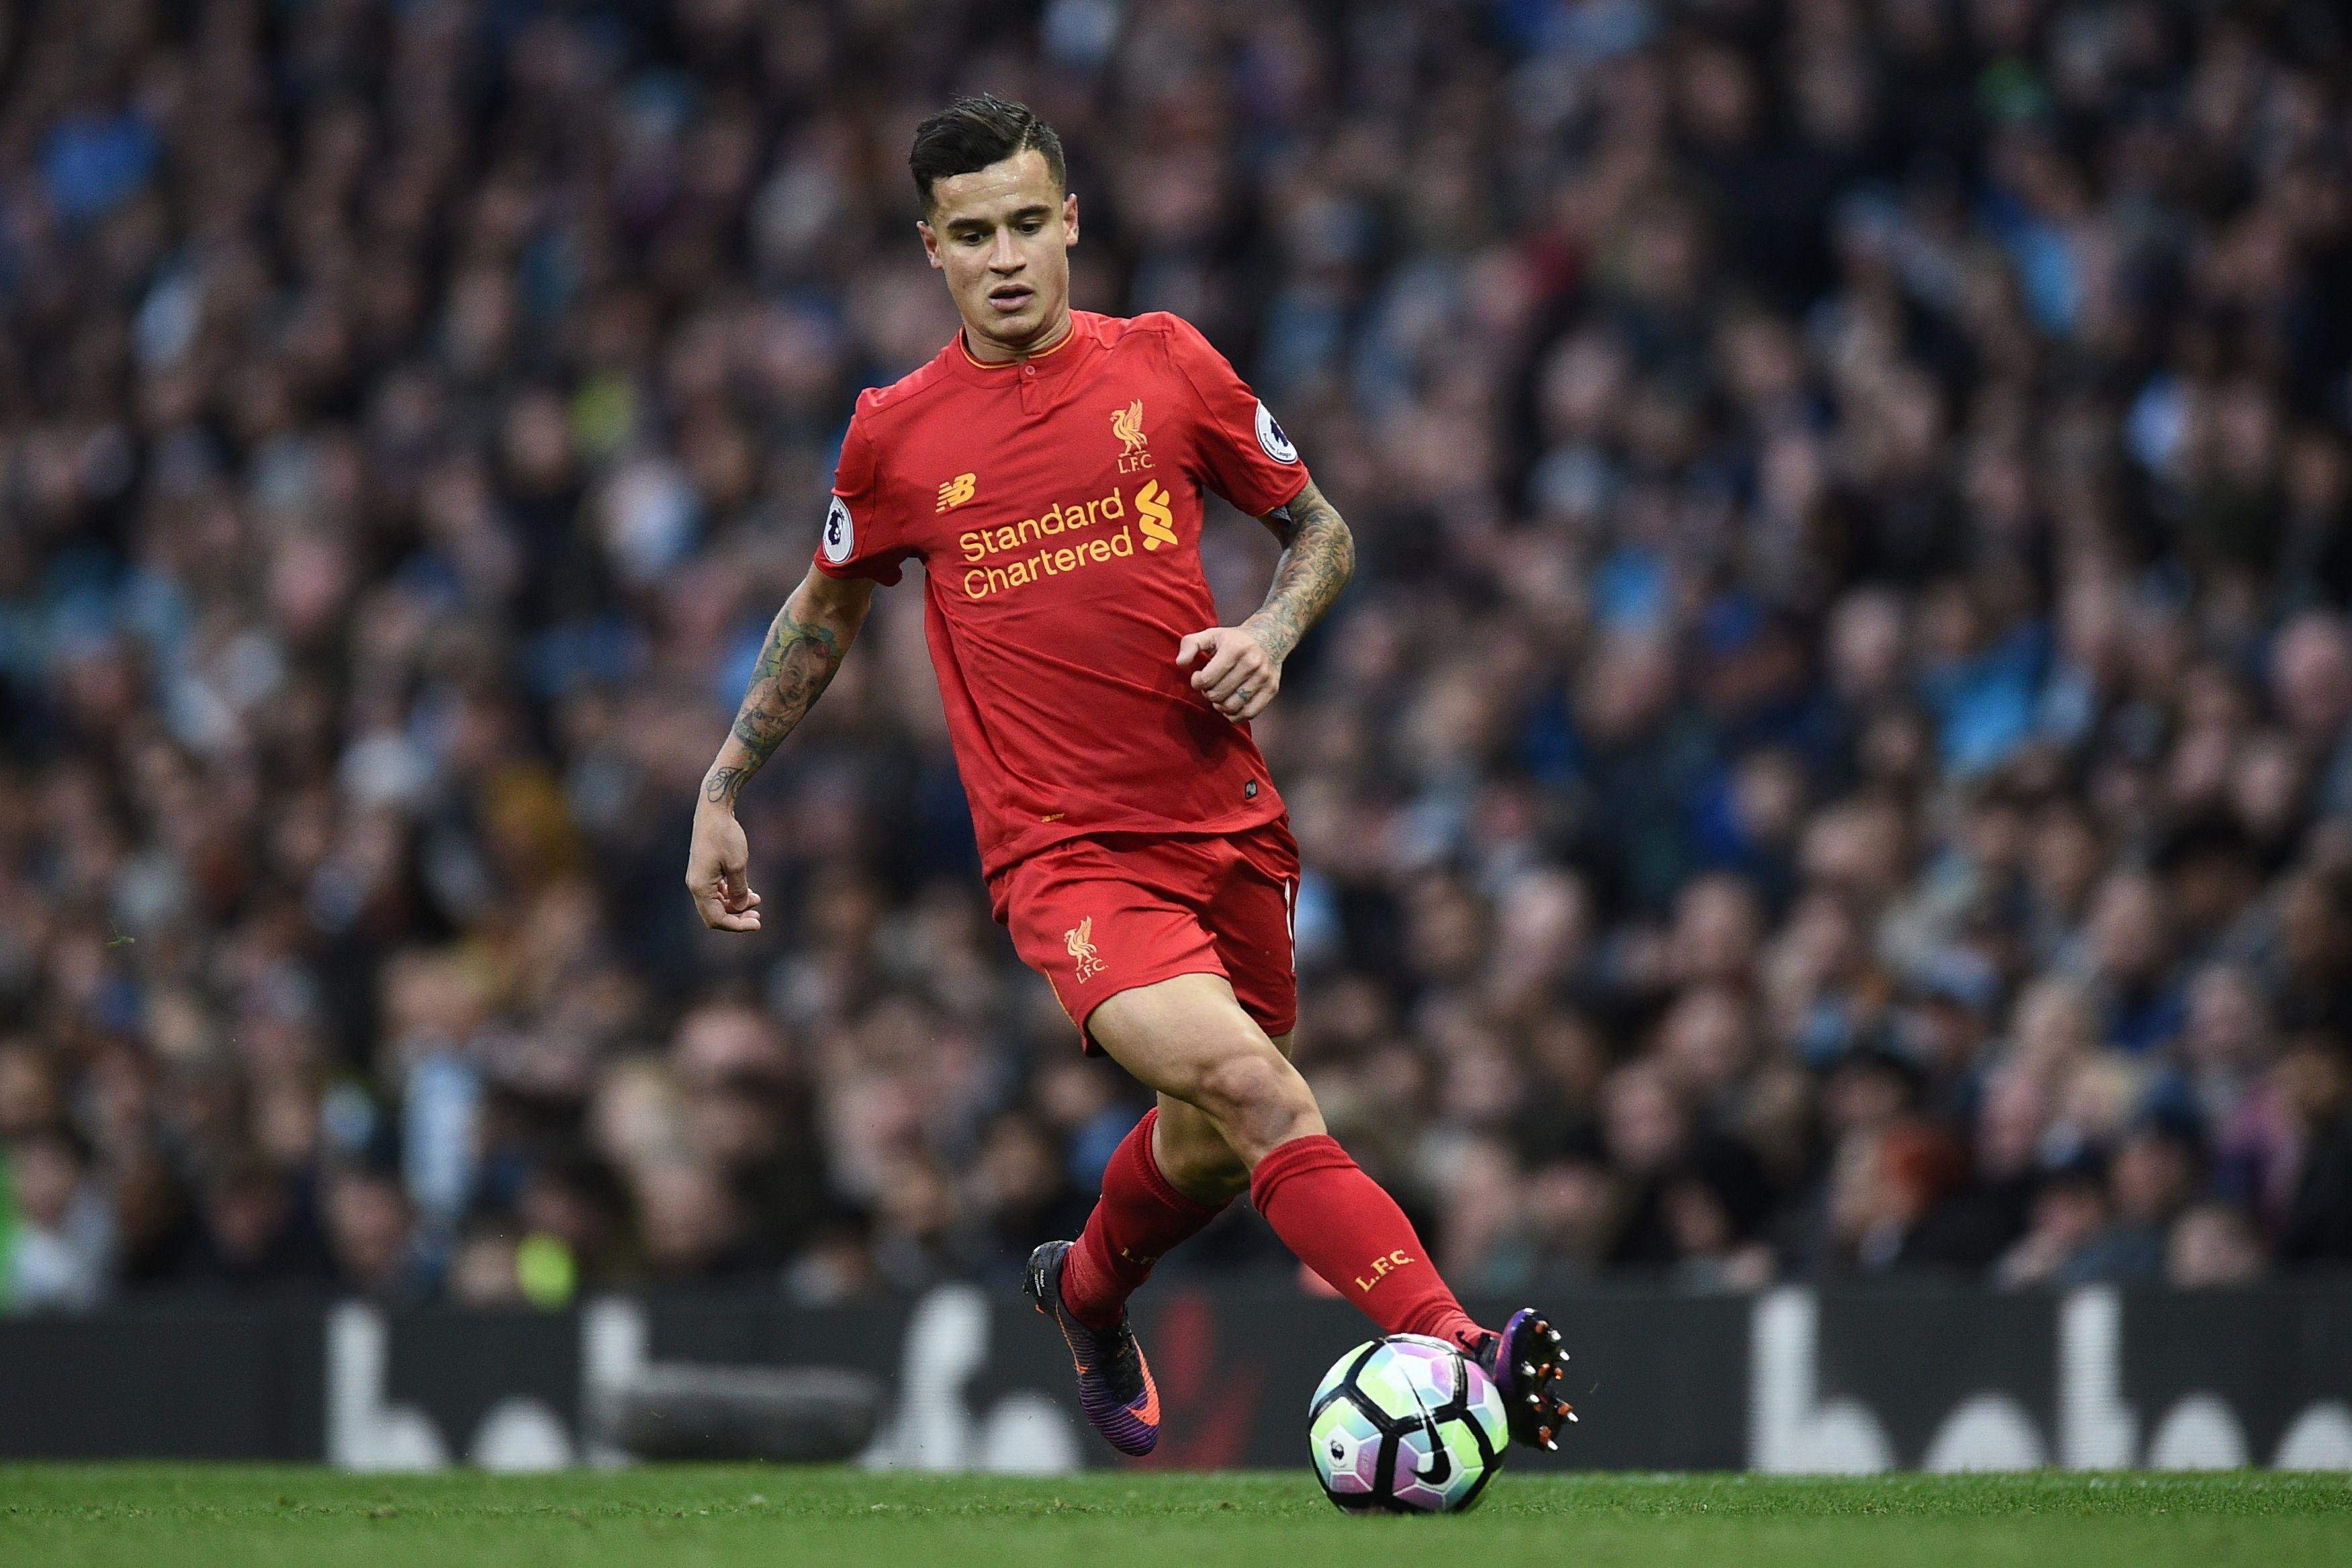 Philippe Coutinho is Liverpoo's creative force